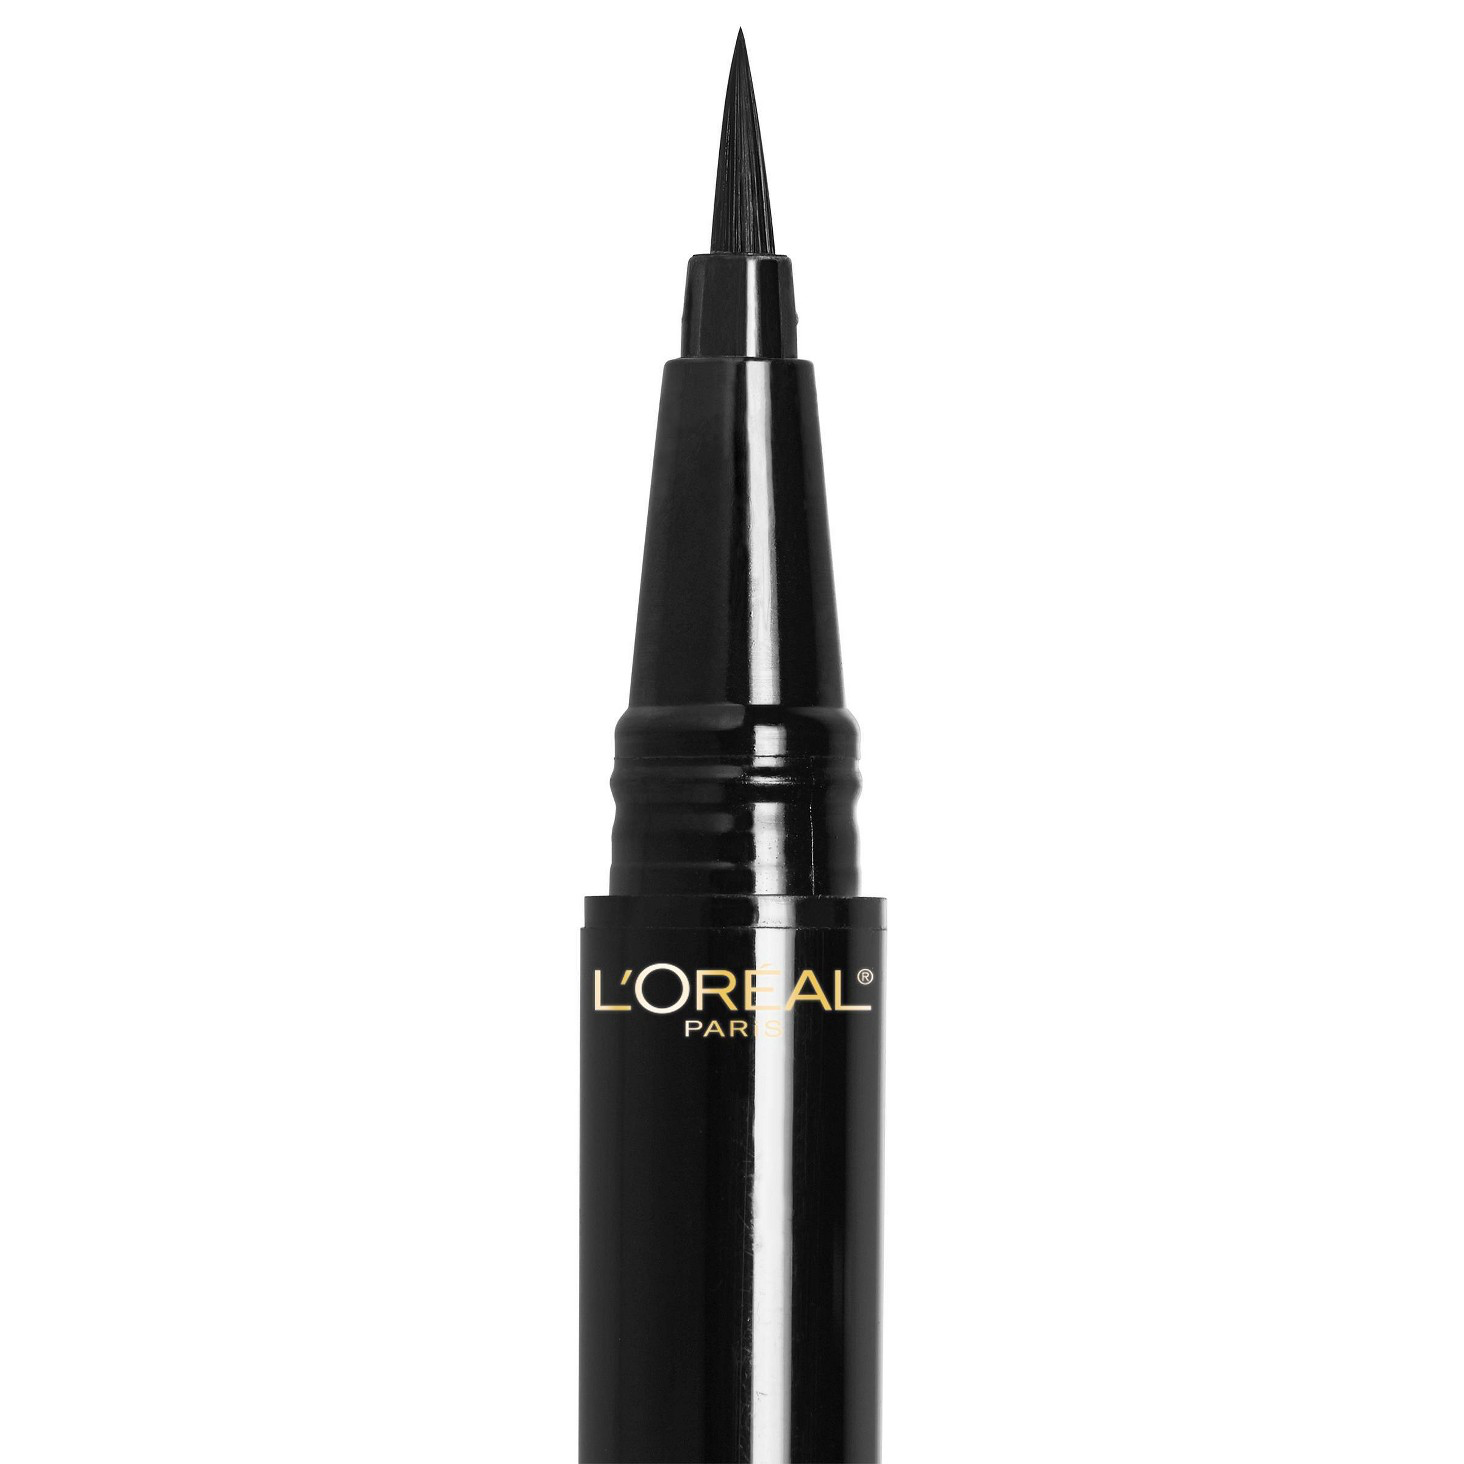 Infallible__Flash_Cat_Eye_Waterproof_Brush_Tip_Liquid_Eyeliner_from_L_Oreal_Paris_3.png